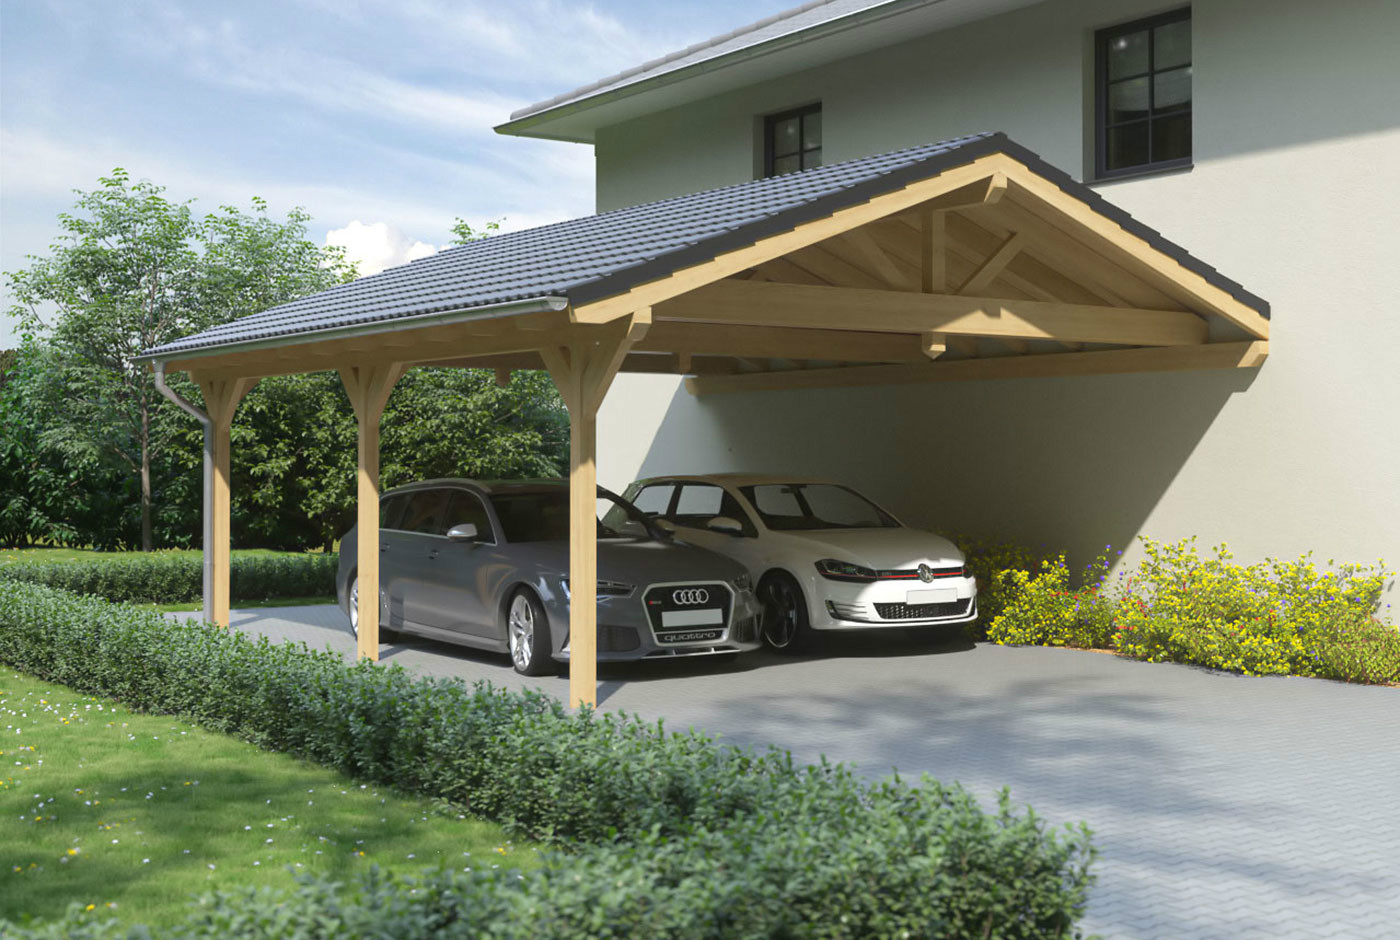 carport satteldach leimholz holz 6x7 m 600x700 cm steda ebay. Black Bedroom Furniture Sets. Home Design Ideas